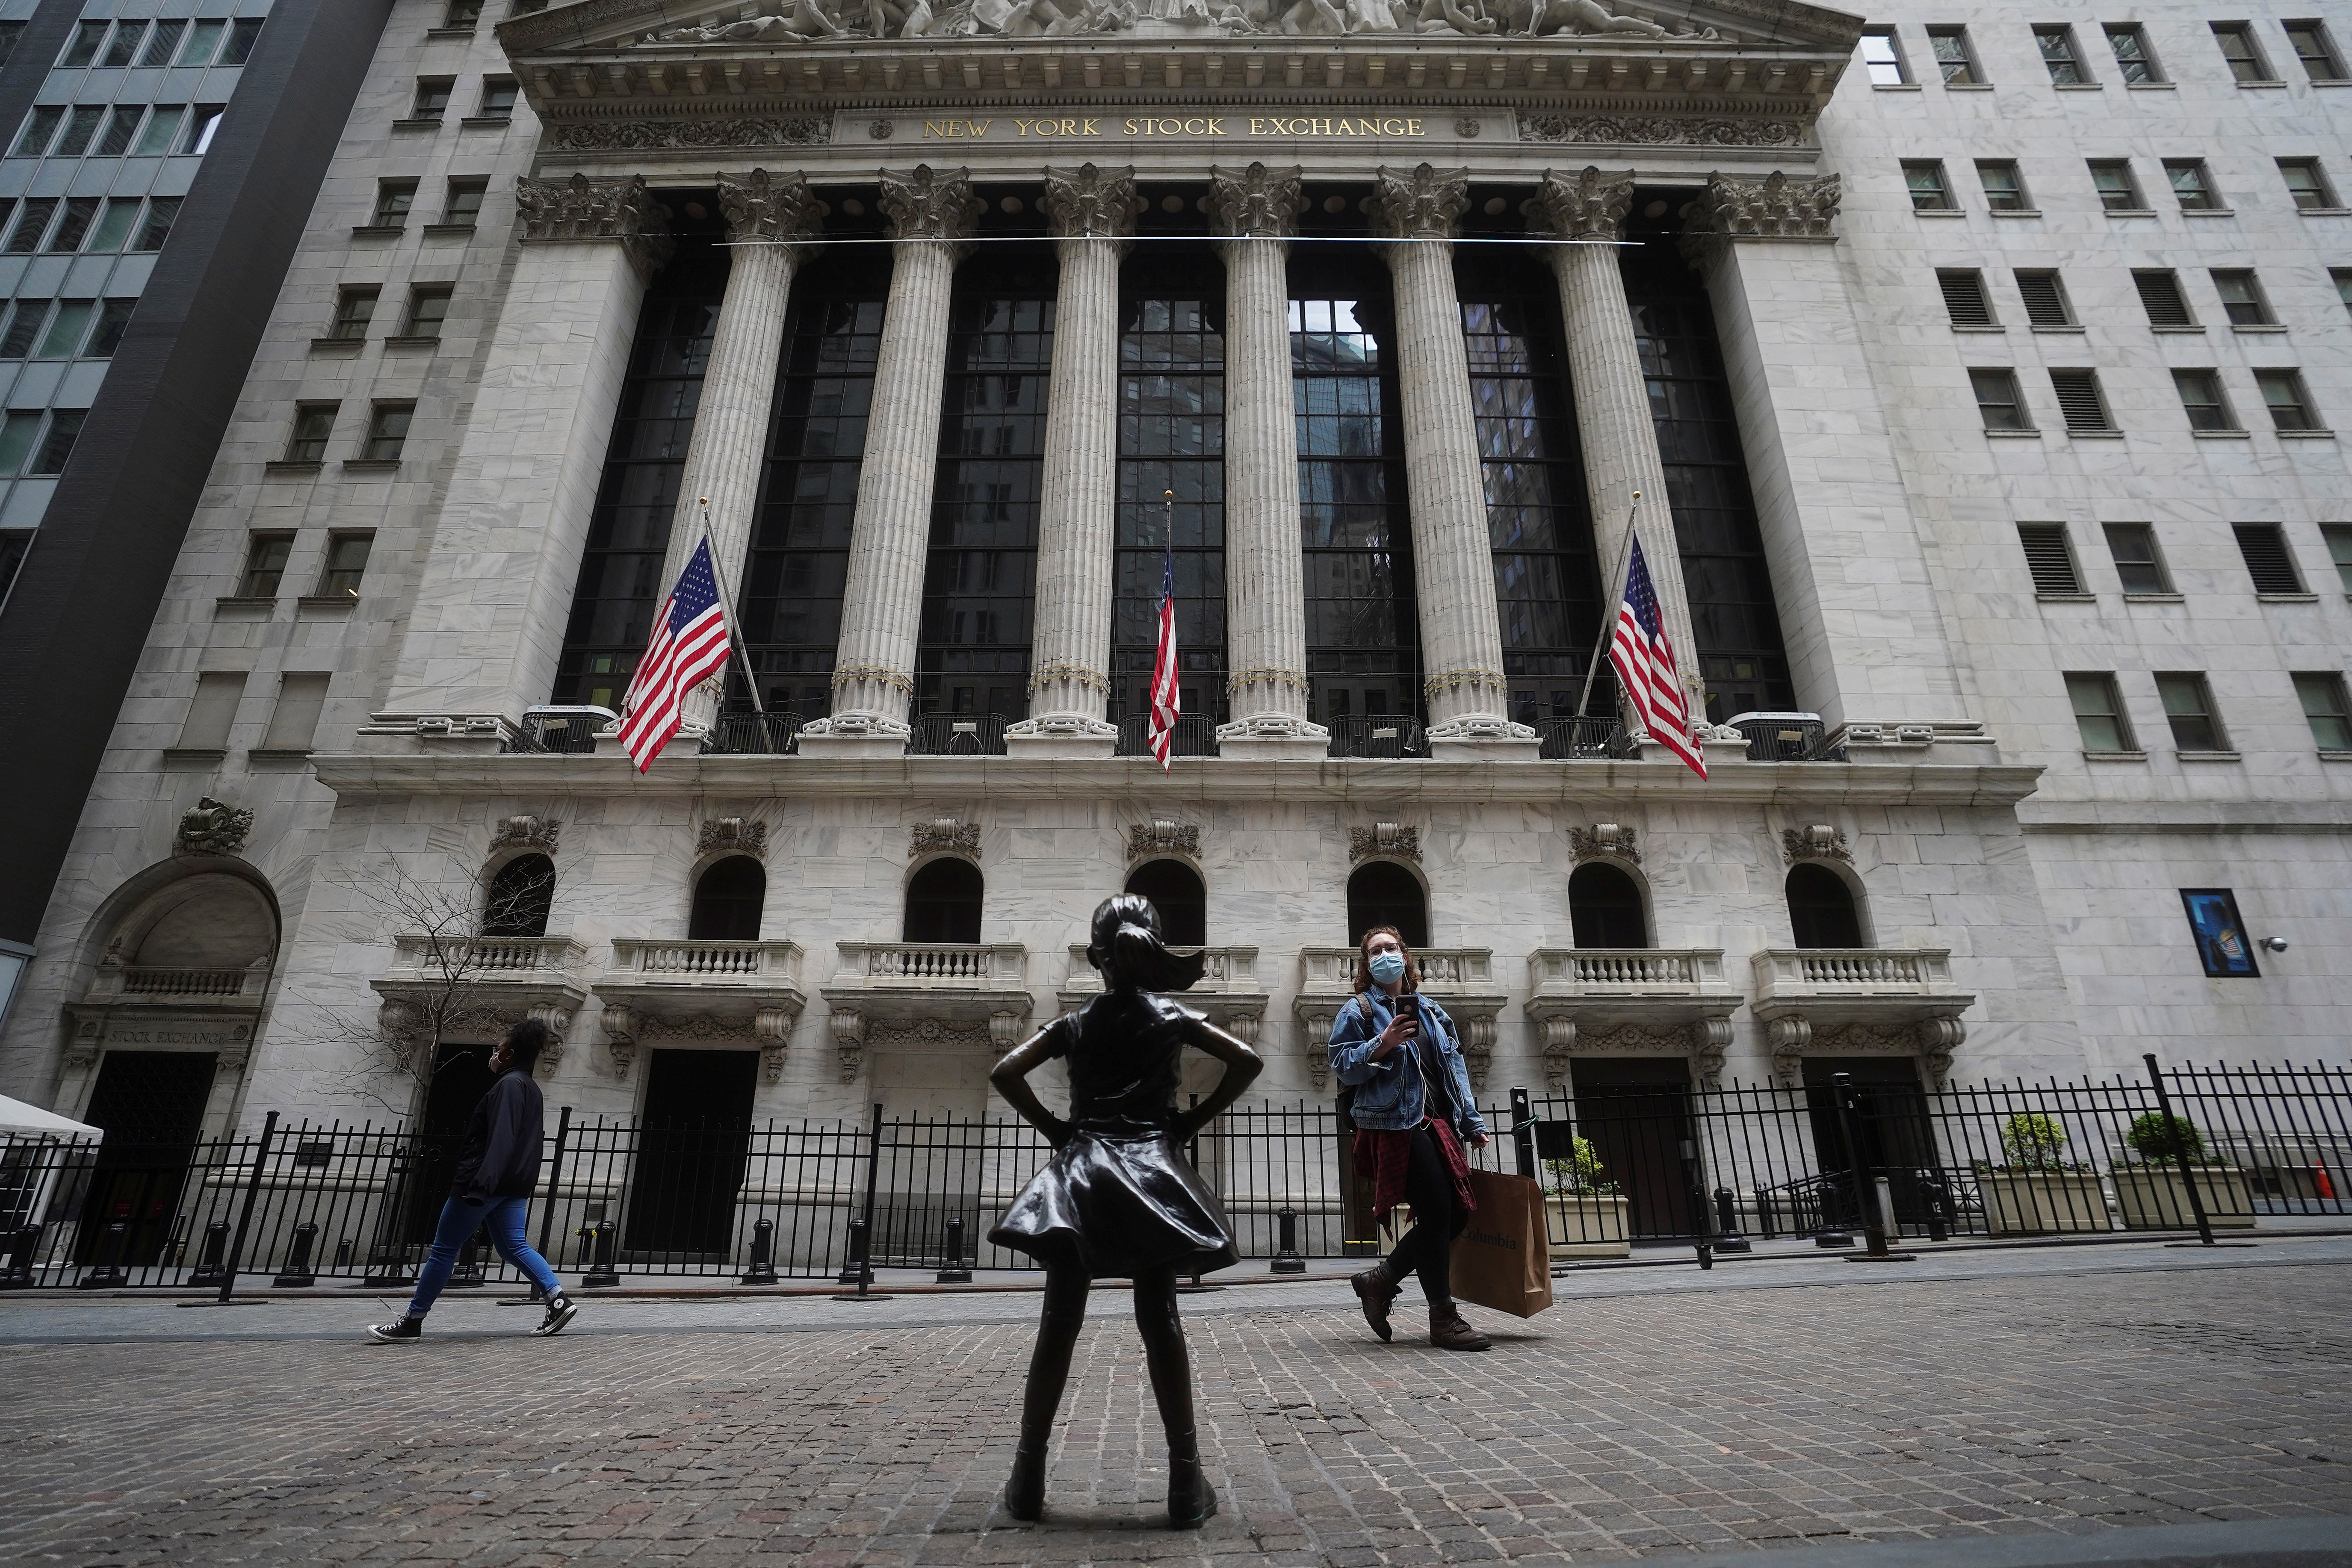 The New York Stock Exchange is pictured amid the coronavirus disease (COVID-19) pandemic in the Manhattan borough of New York City, New York, U.S., April 16, 2021. REUTERS/Carlo Allegri